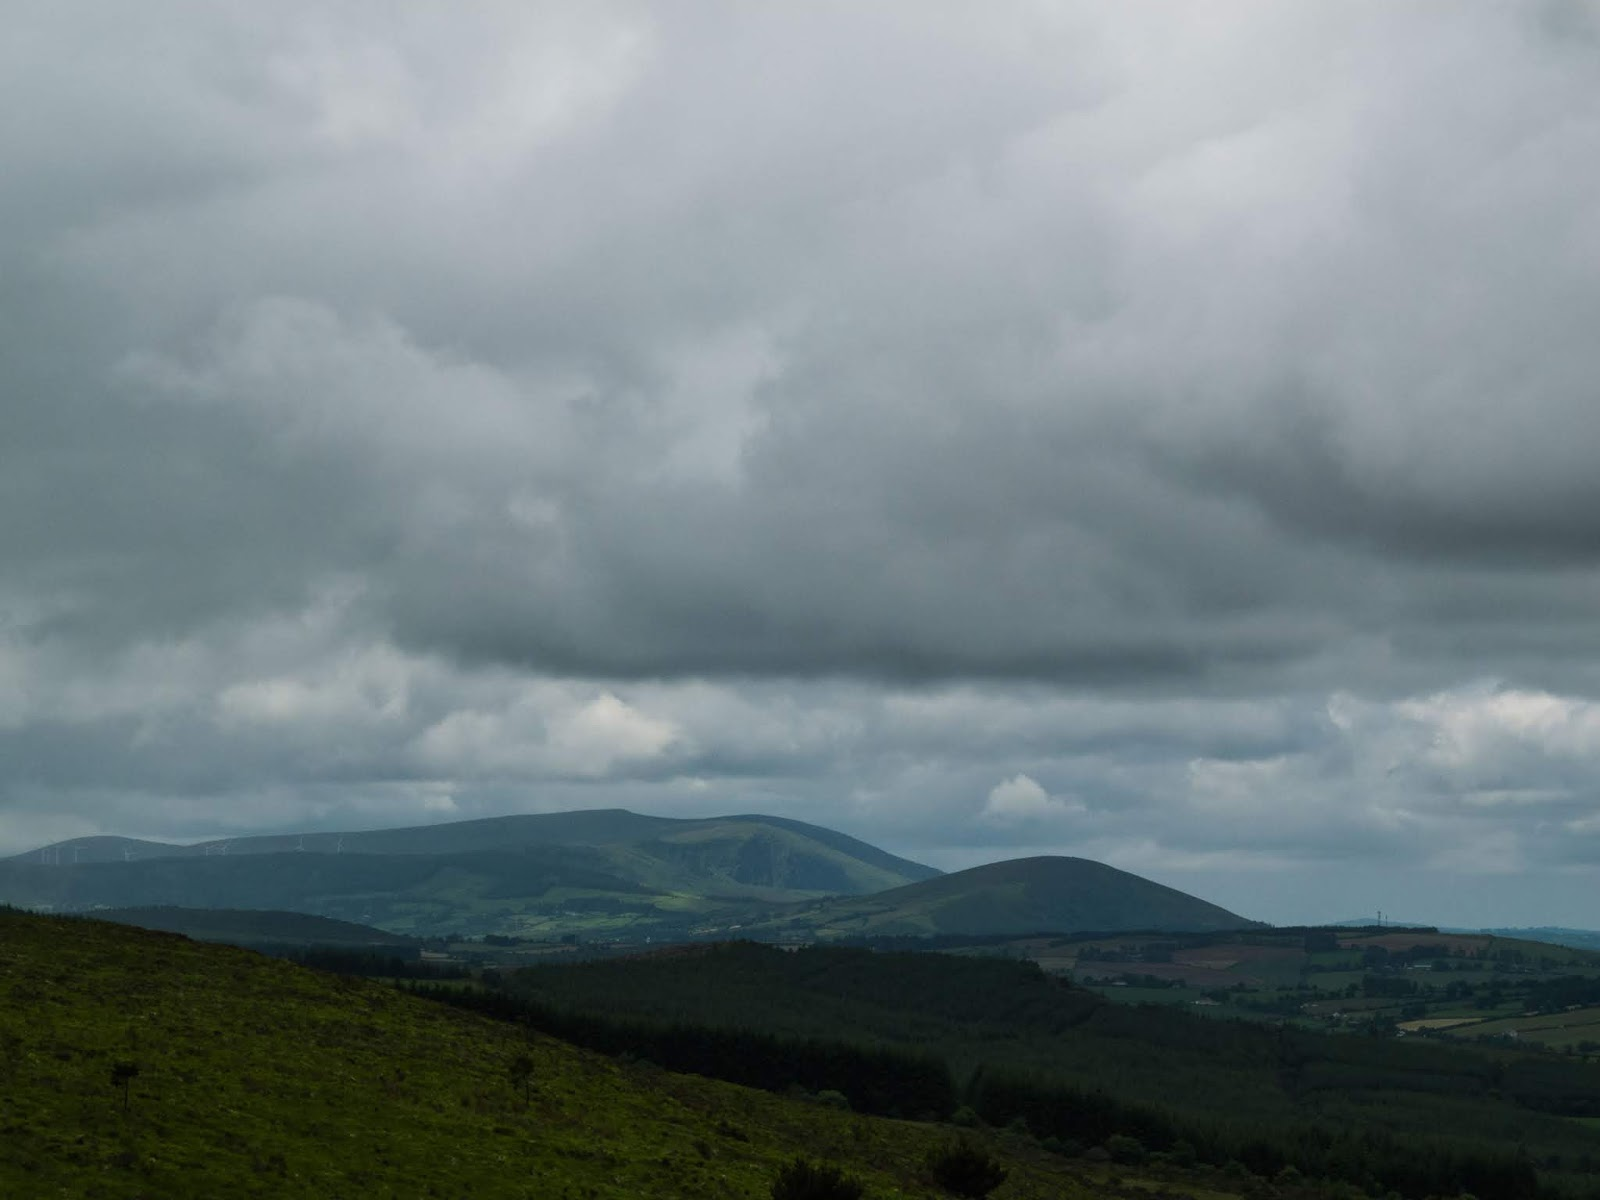 Boggeragh Mountains, County Cork on a cloudy day.